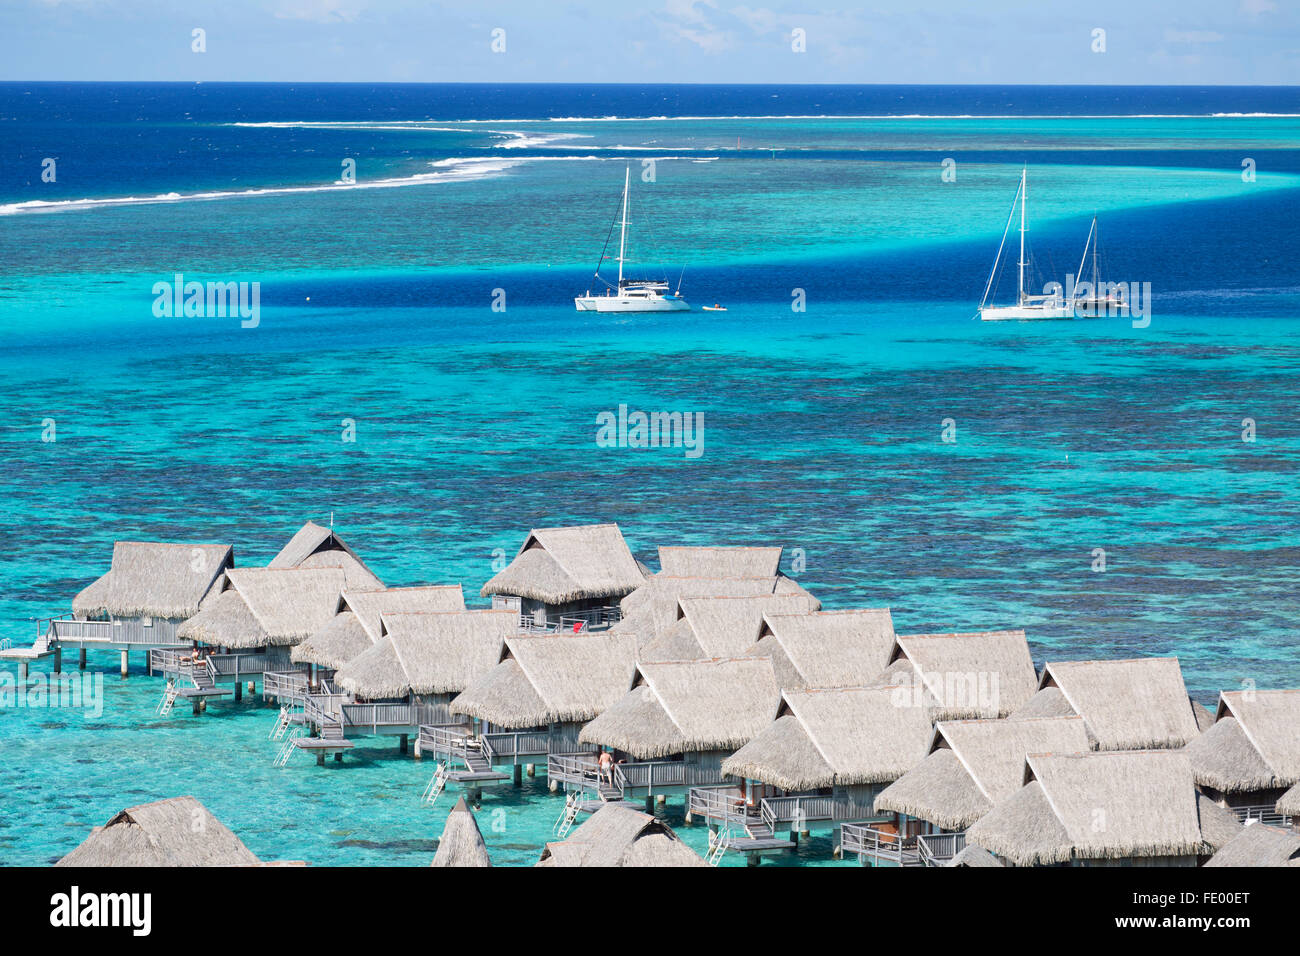 Overwater bungalows of Sofitel Hotel, Moorea, Society Islands, French Polynesia Stock Photo